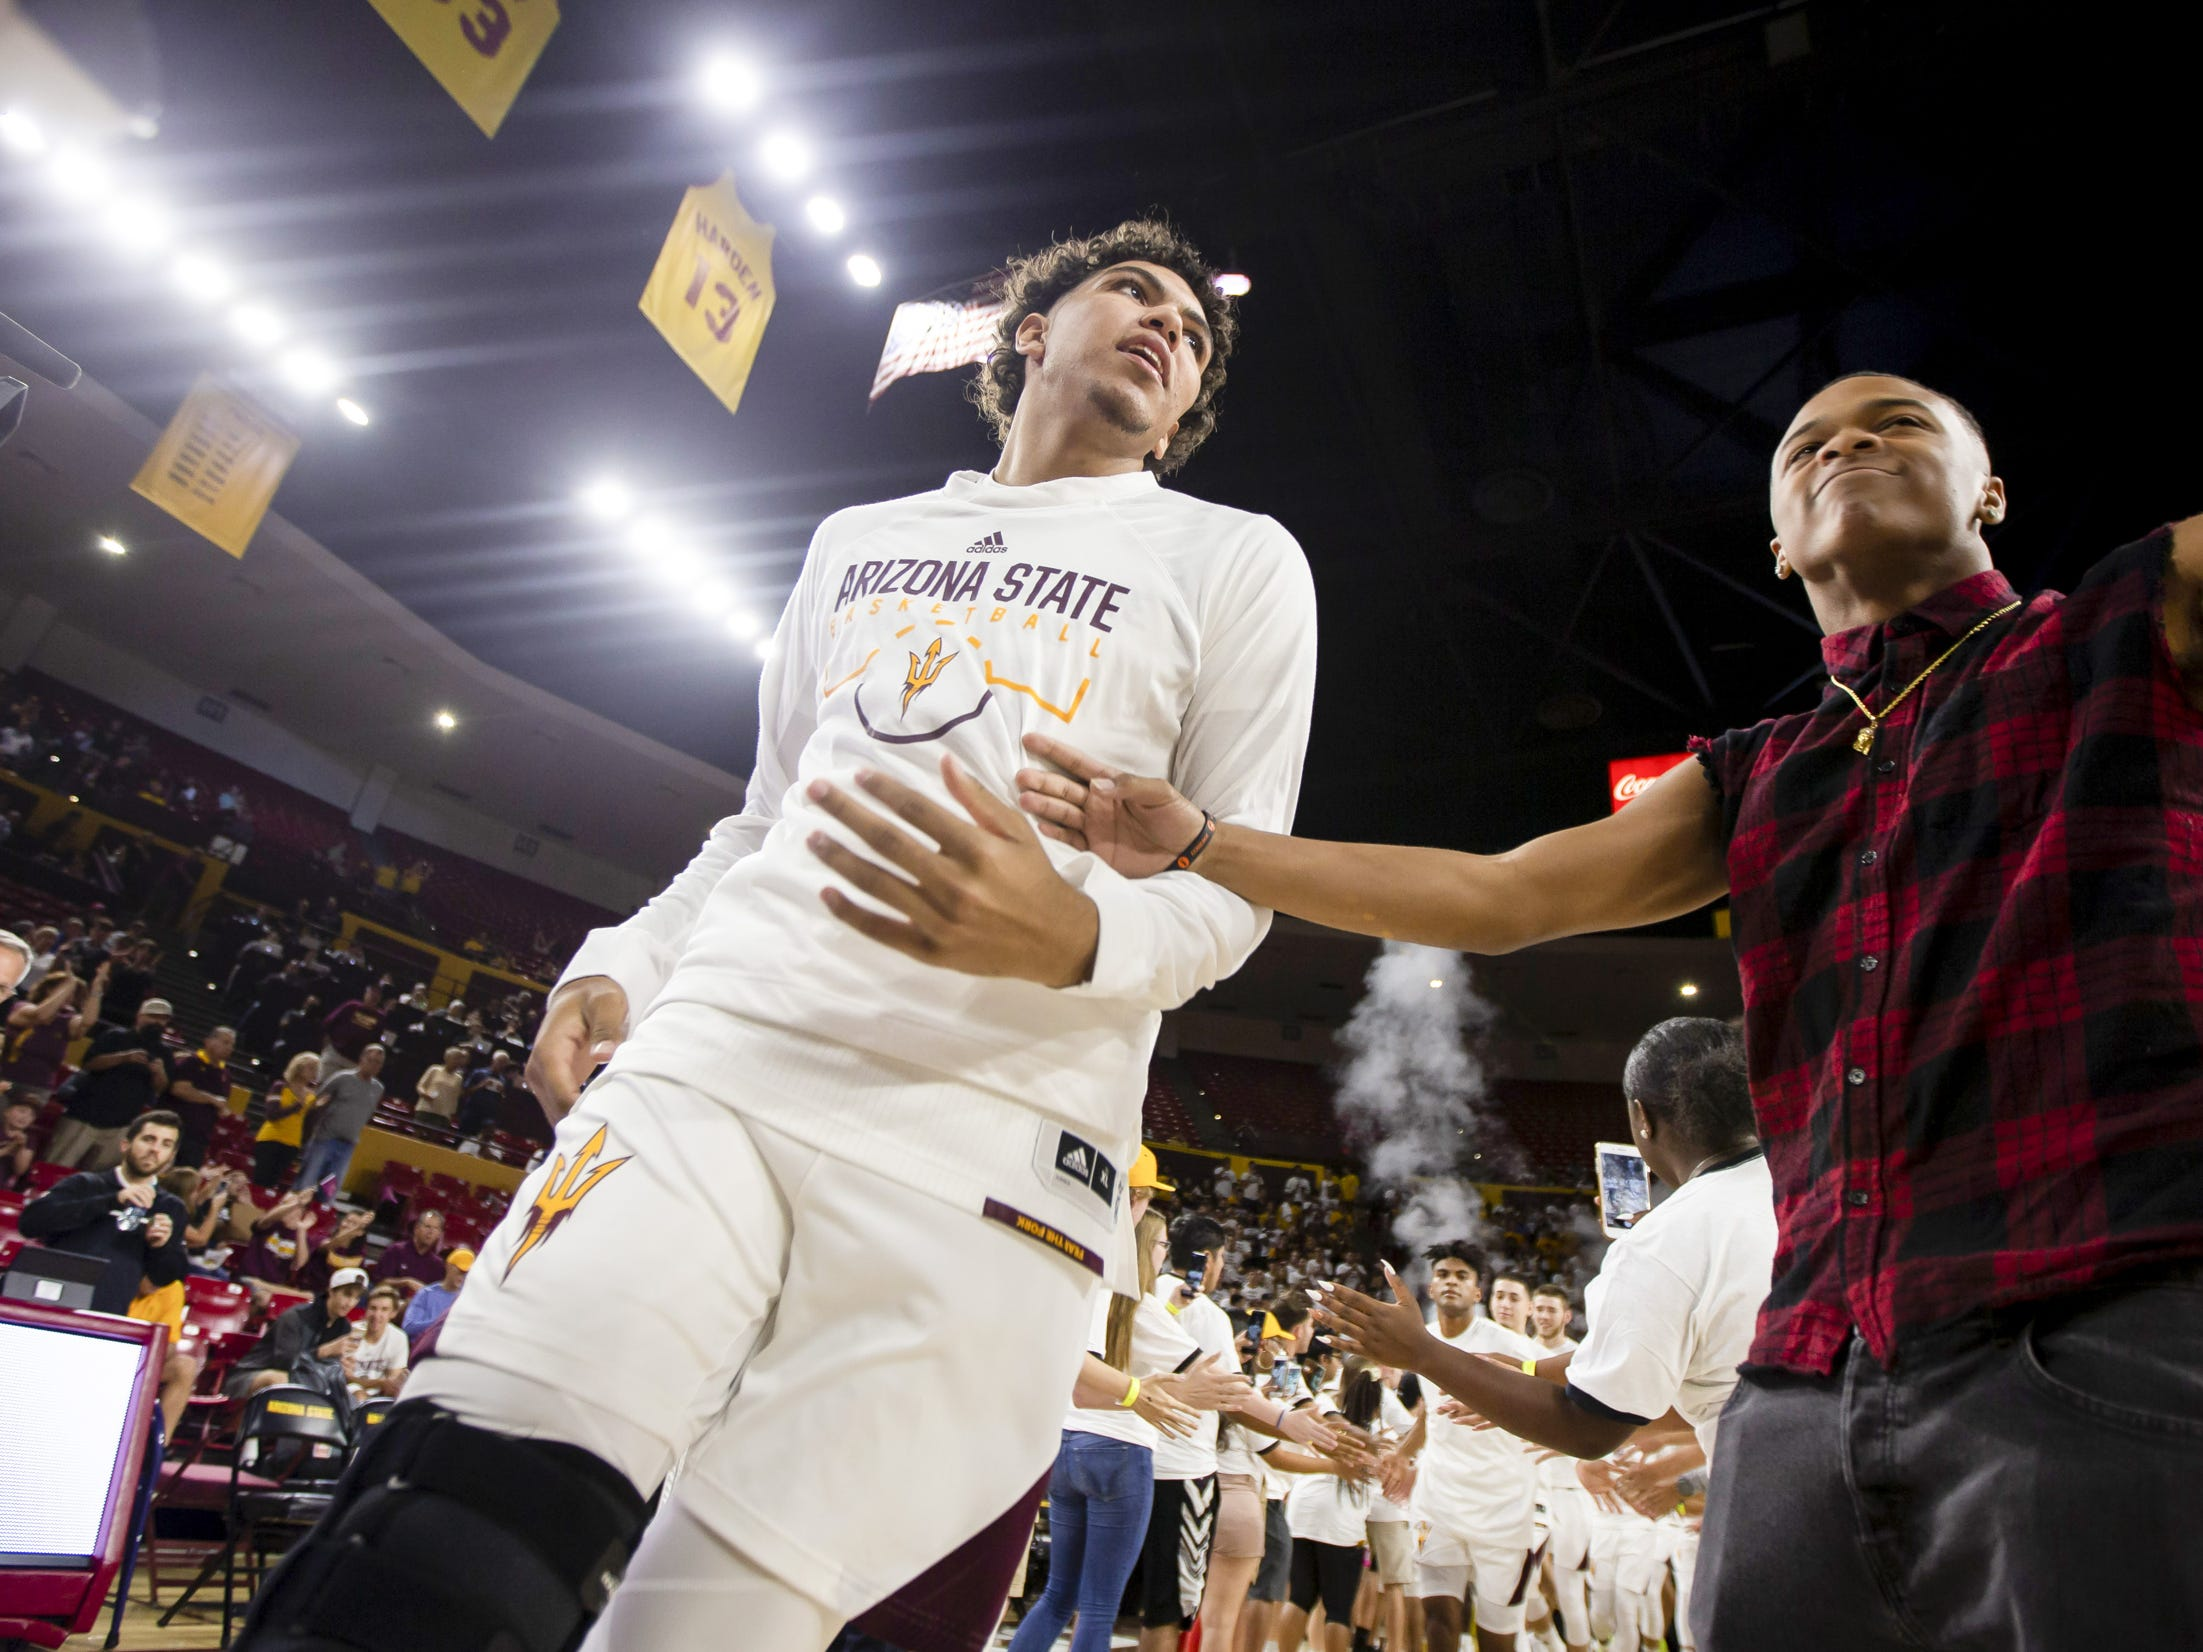 The Arizona State Sun Devils take the court against the Cal State Fullerton Titans at Wells Fargo Arena on Tuesday, November 6, 2018 in Tempe, Arizona.